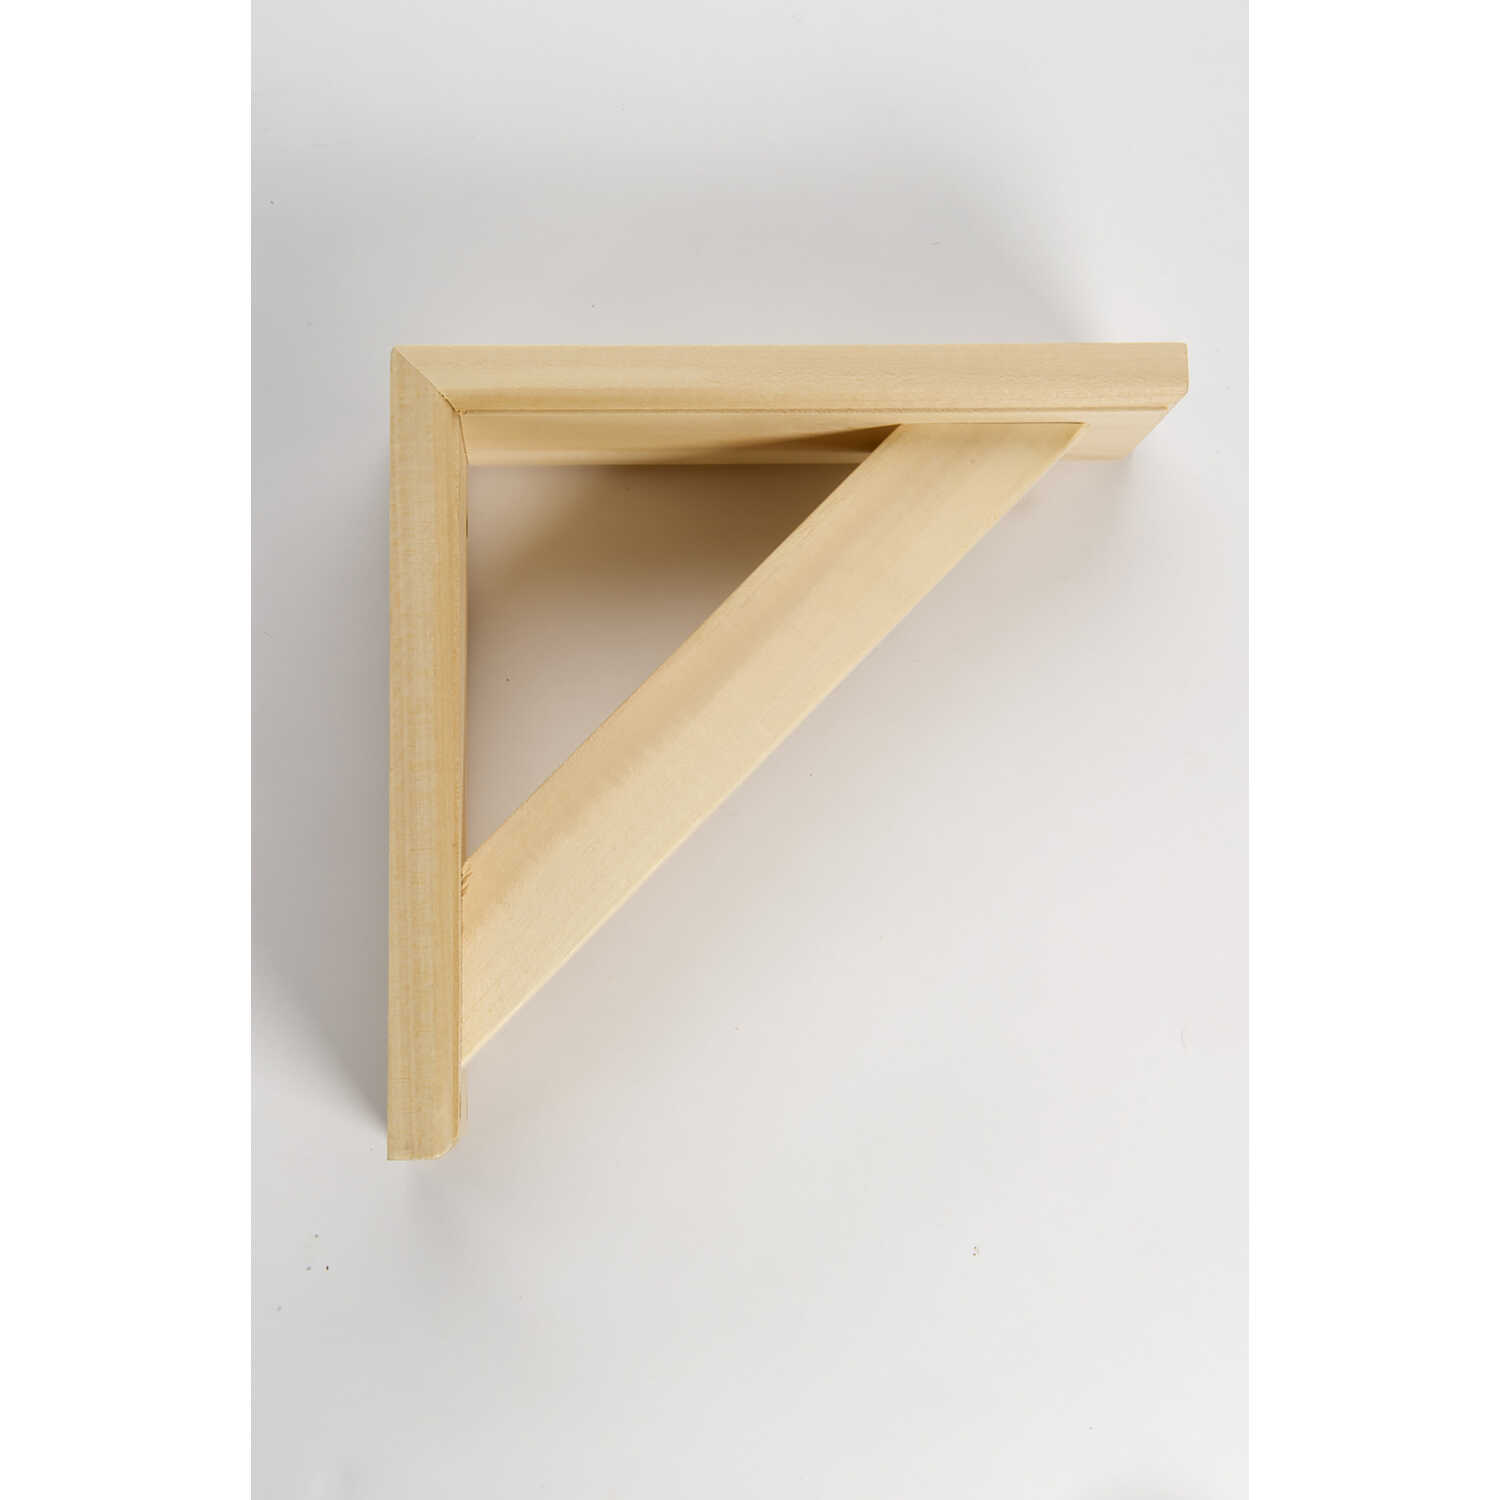 Waddell  Natural  Wood  Shelf Support  Bracket  9 in. L 5 lb.